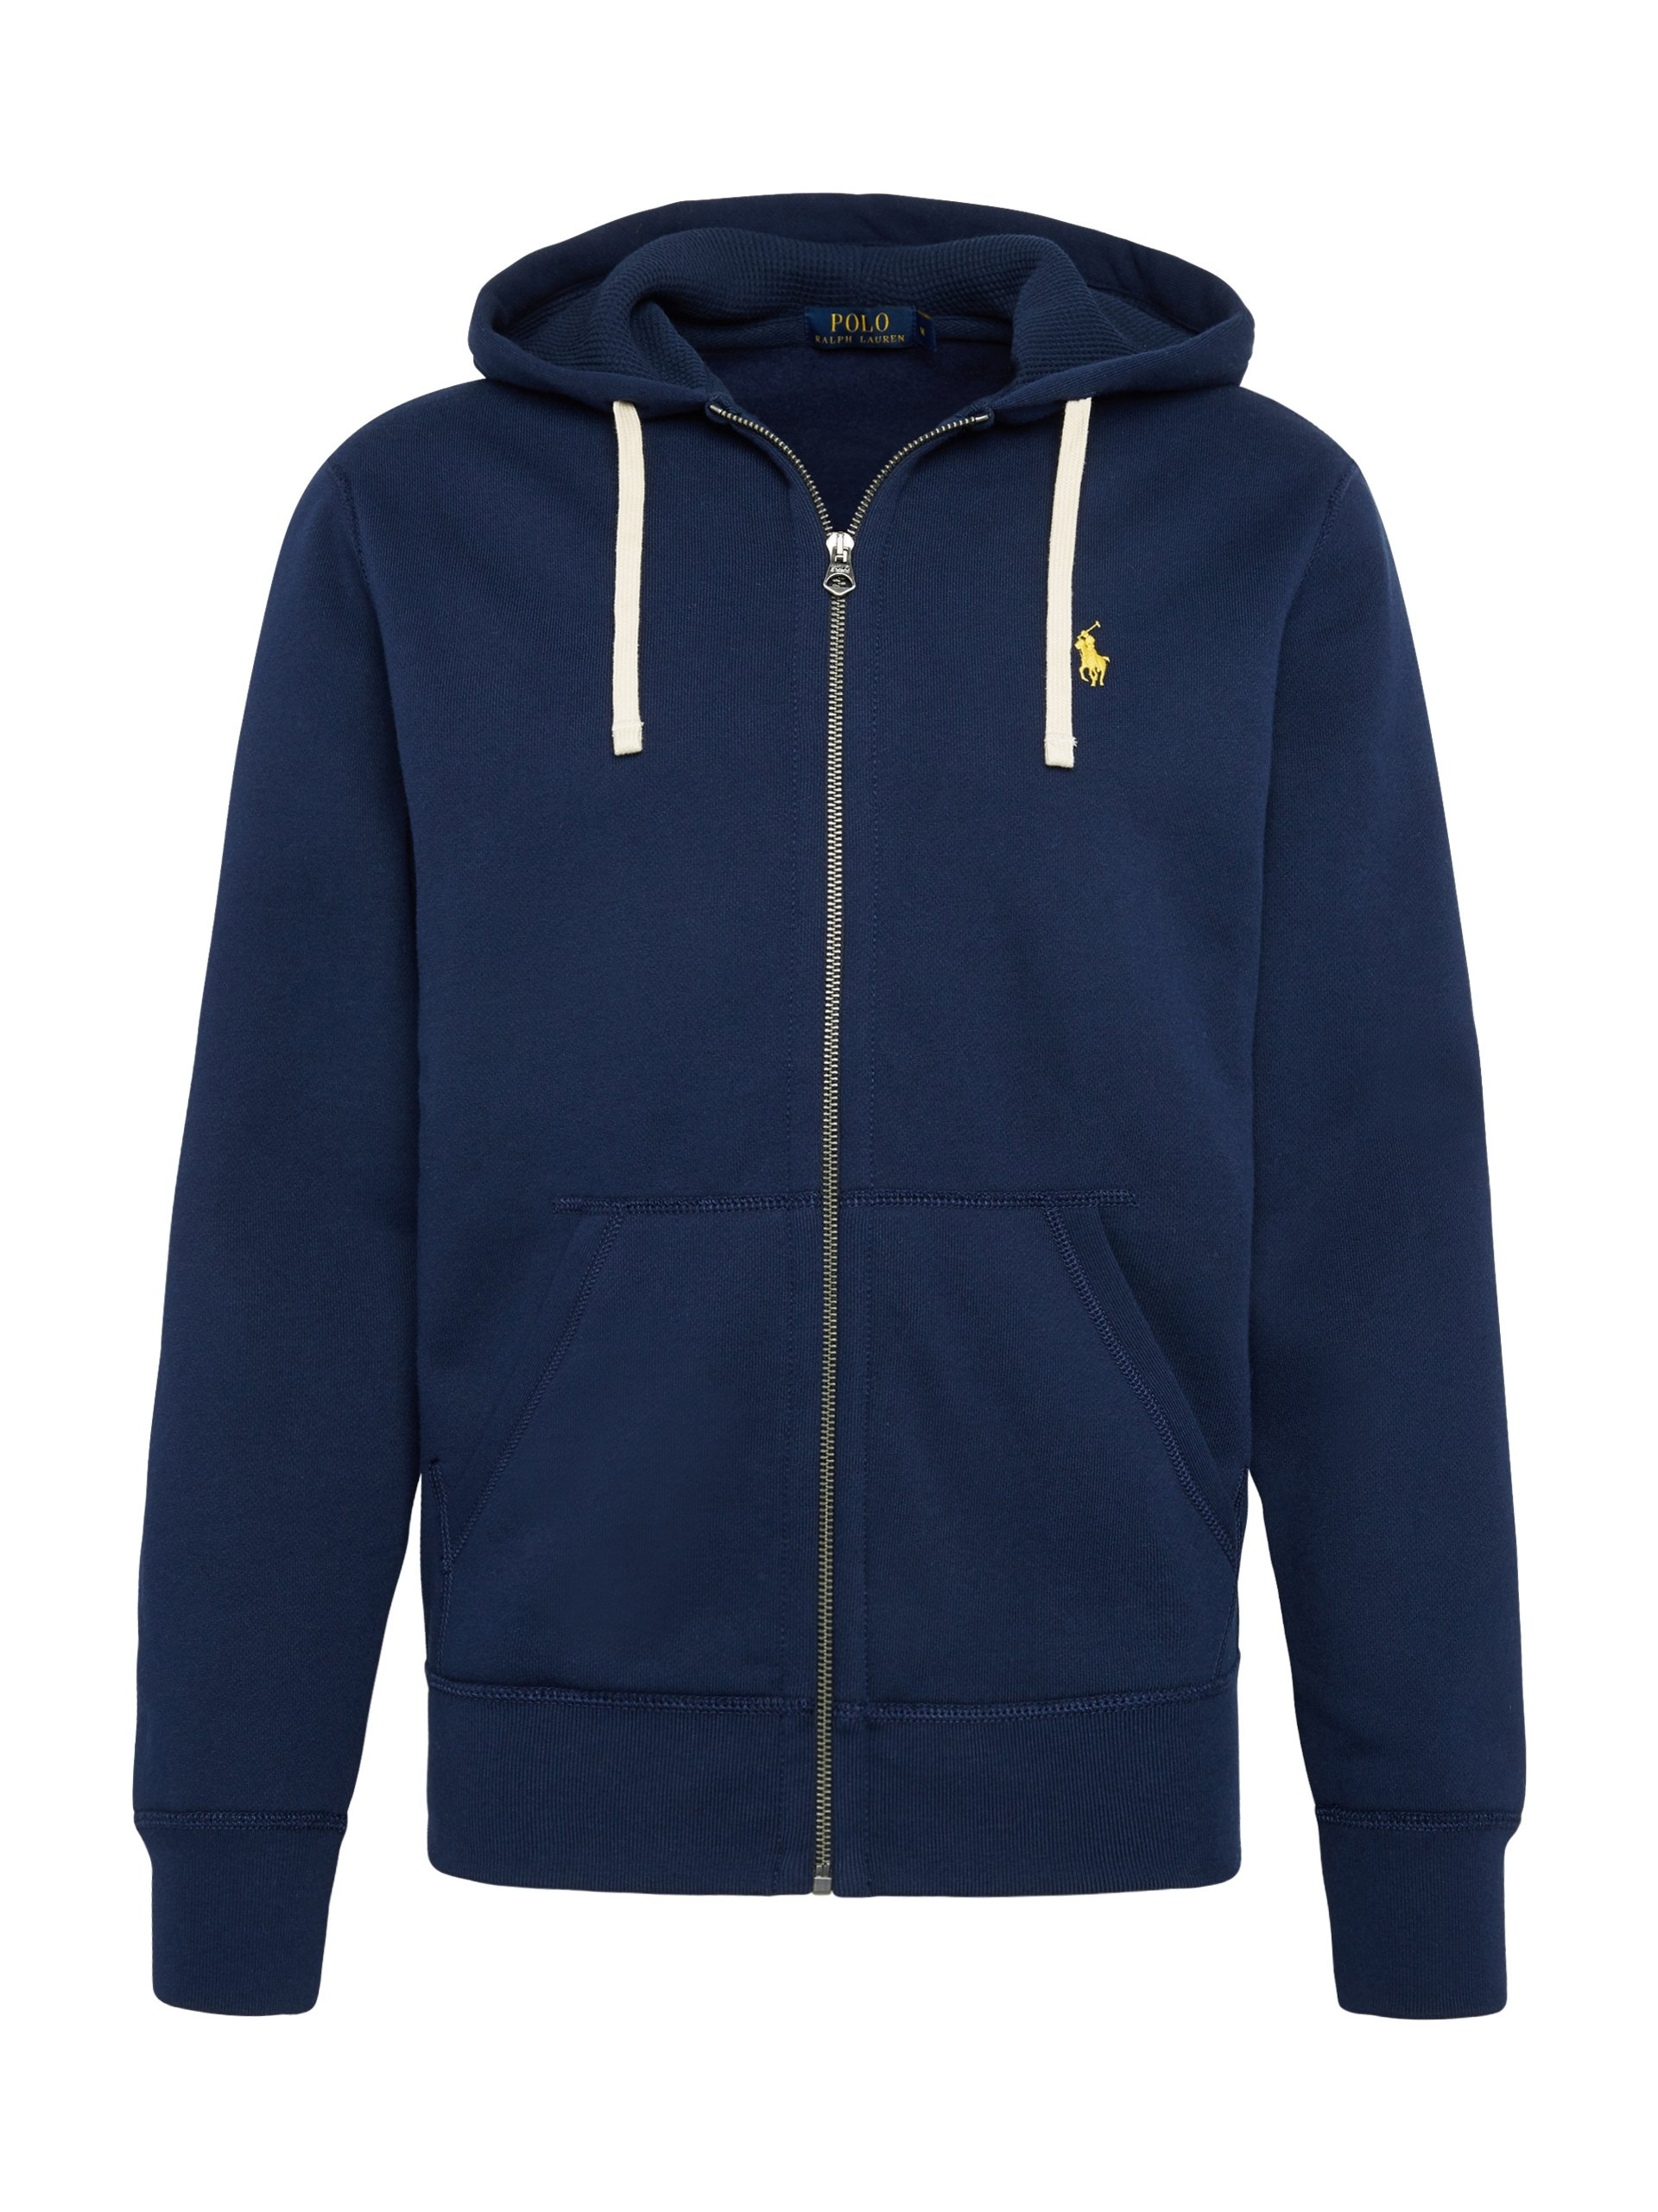 polo ralph lauren herren sweatjacke marine uni online. Black Bedroom Furniture Sets. Home Design Ideas